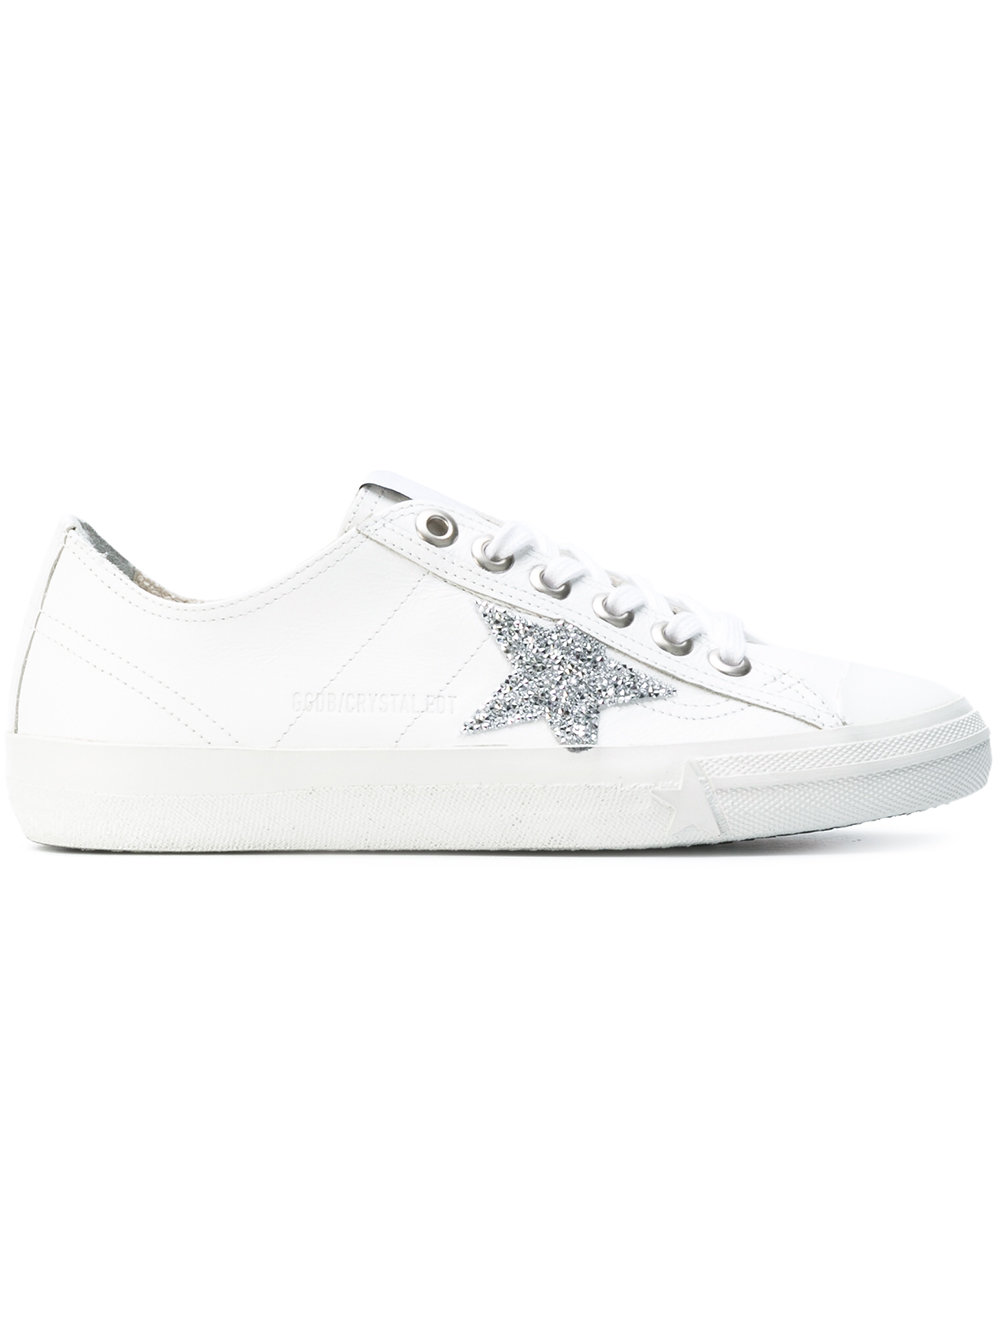 Golden Goose Men Superstar Sneakers In White Leather With Crystal Edition Star